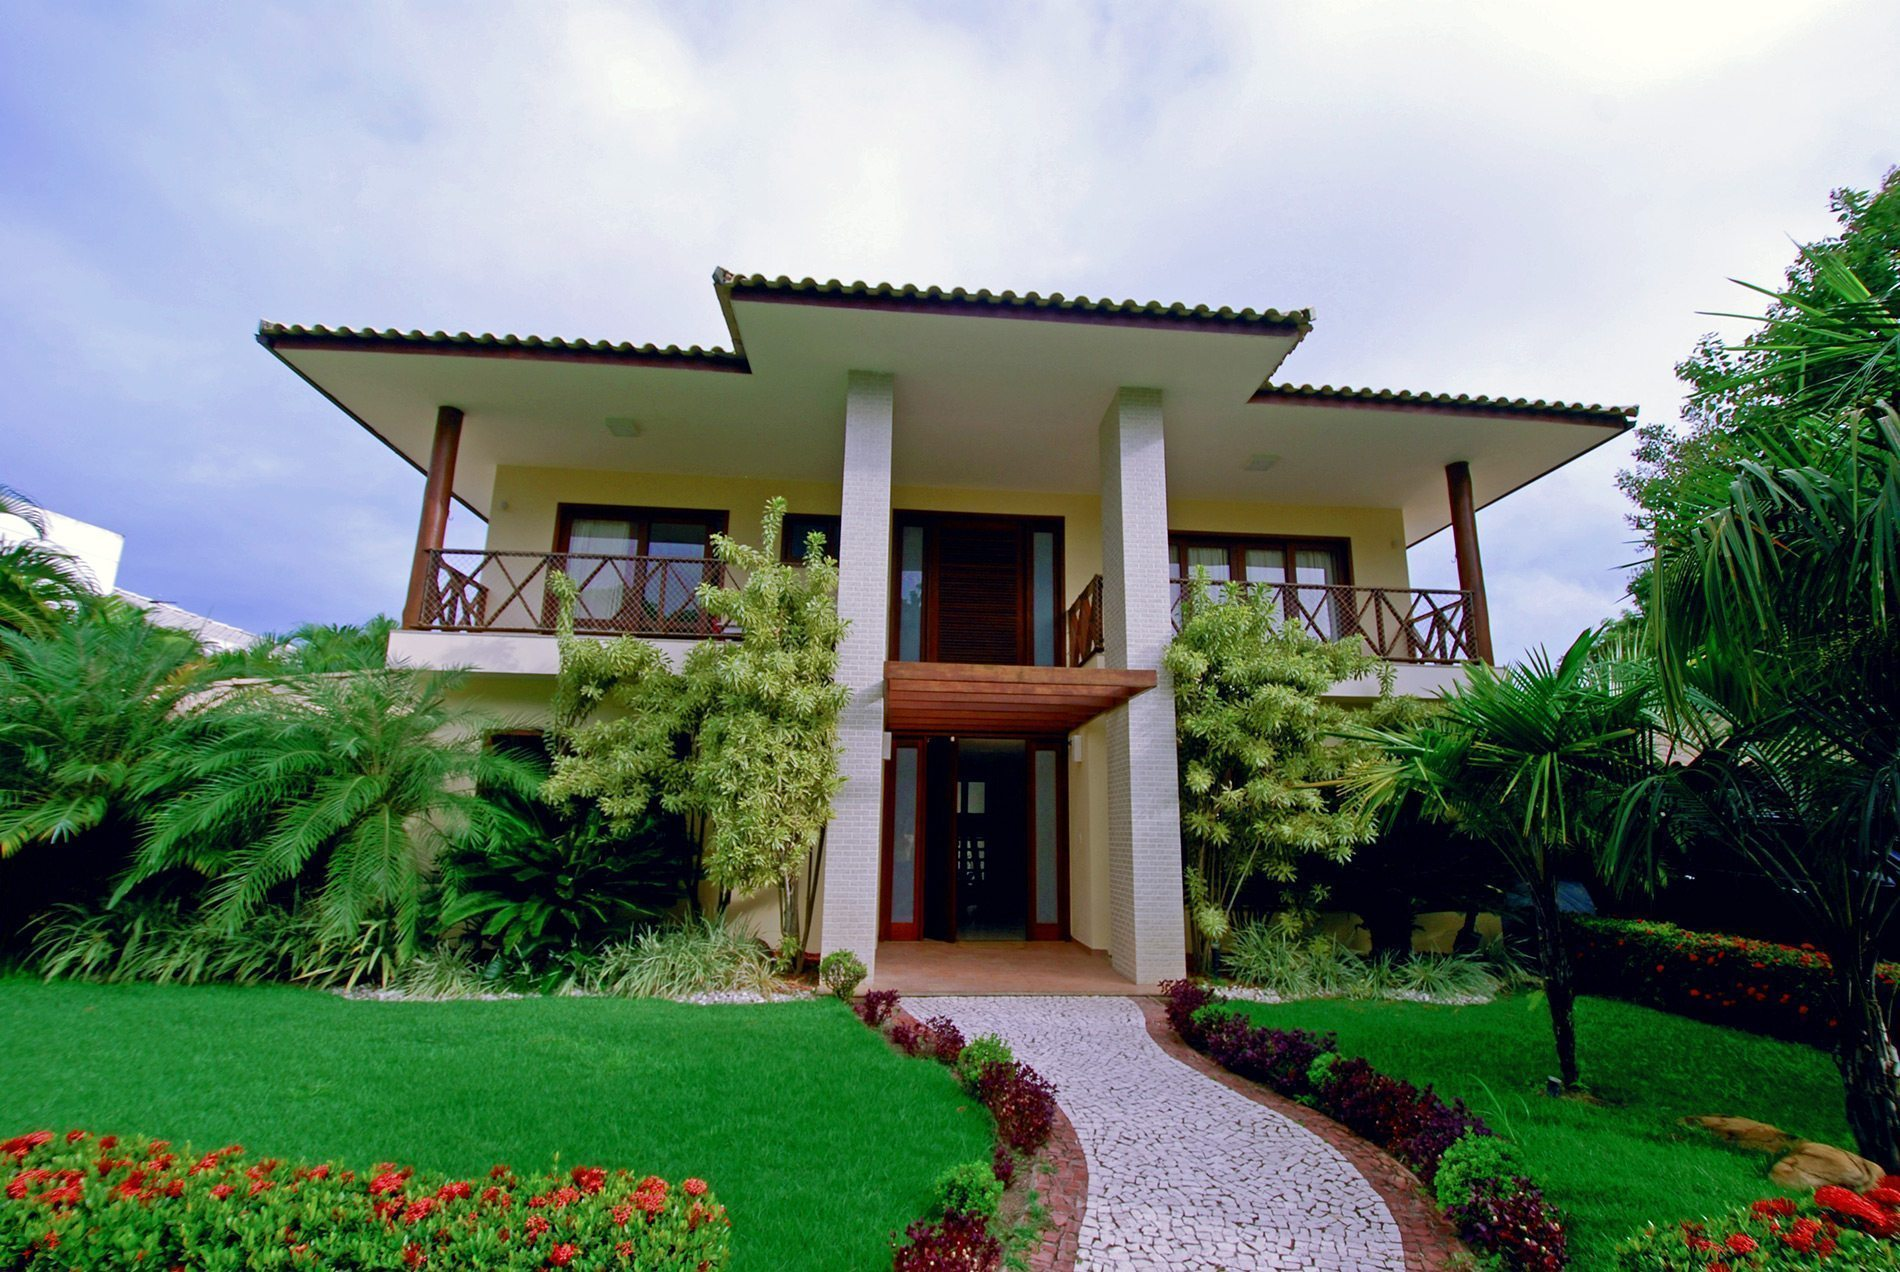 Stunning home for sale in Busca Vida Marina